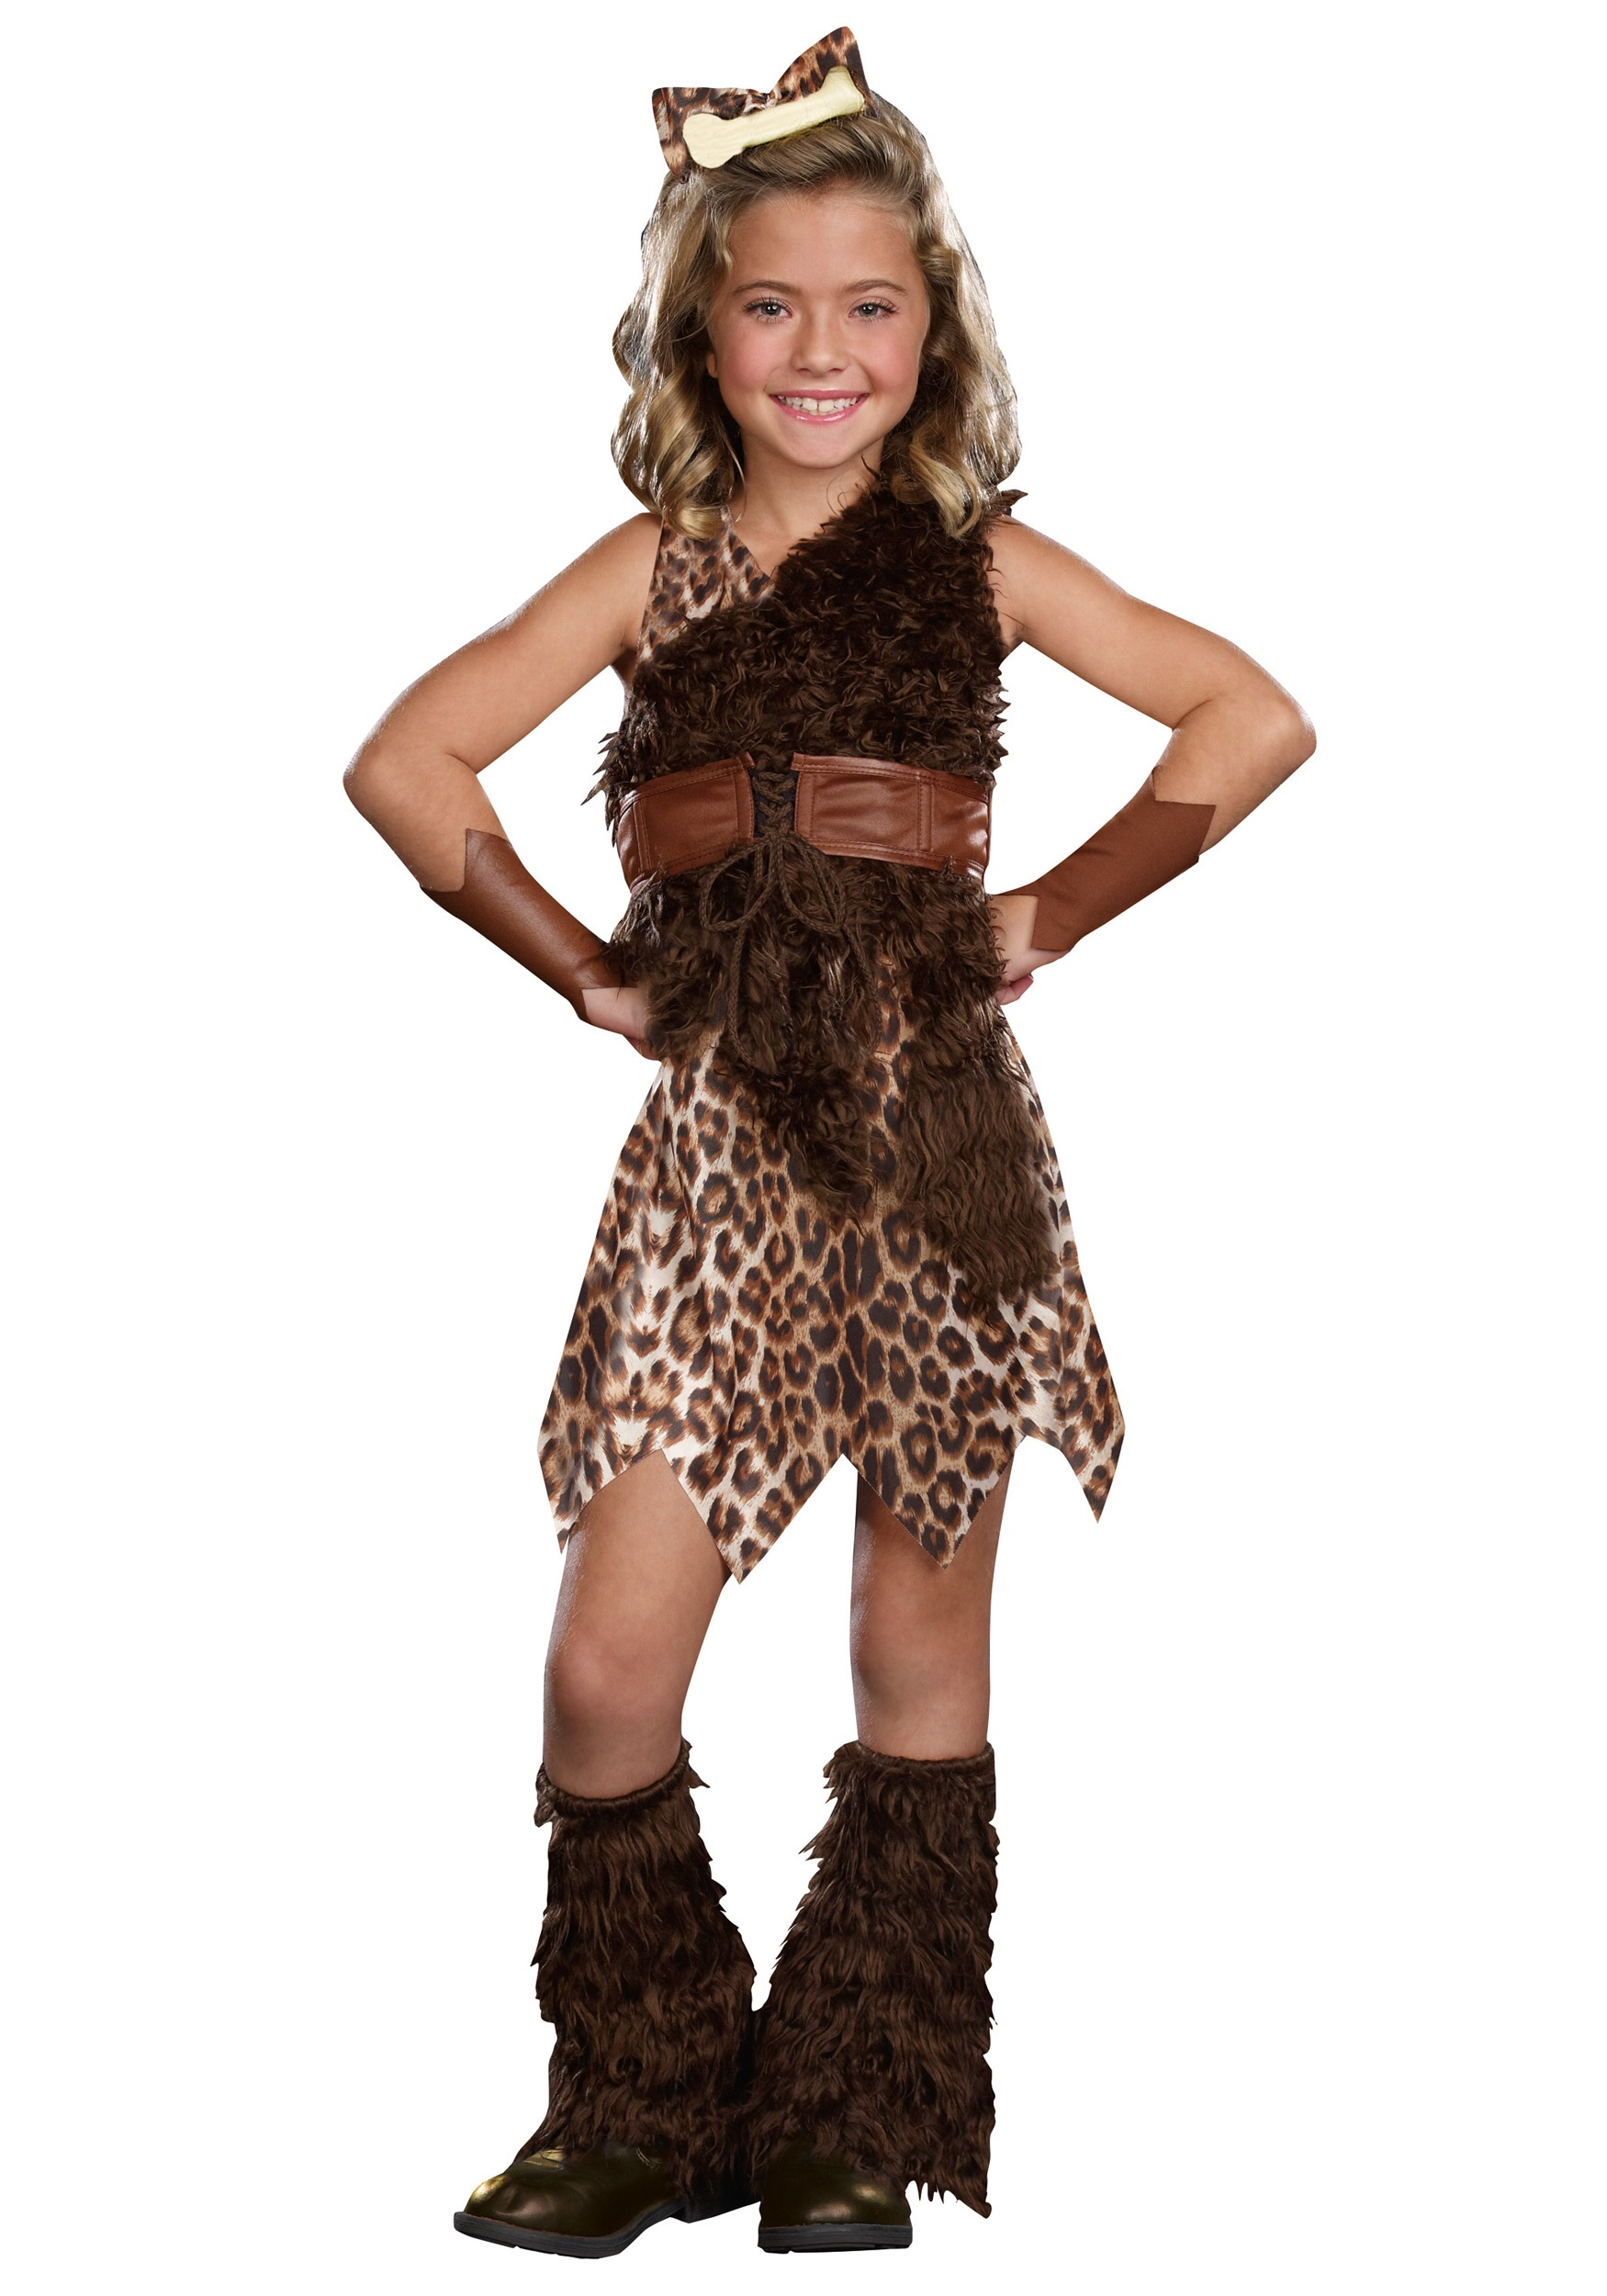 Cave Girl Cutie Costume for Girls | Decade Costume